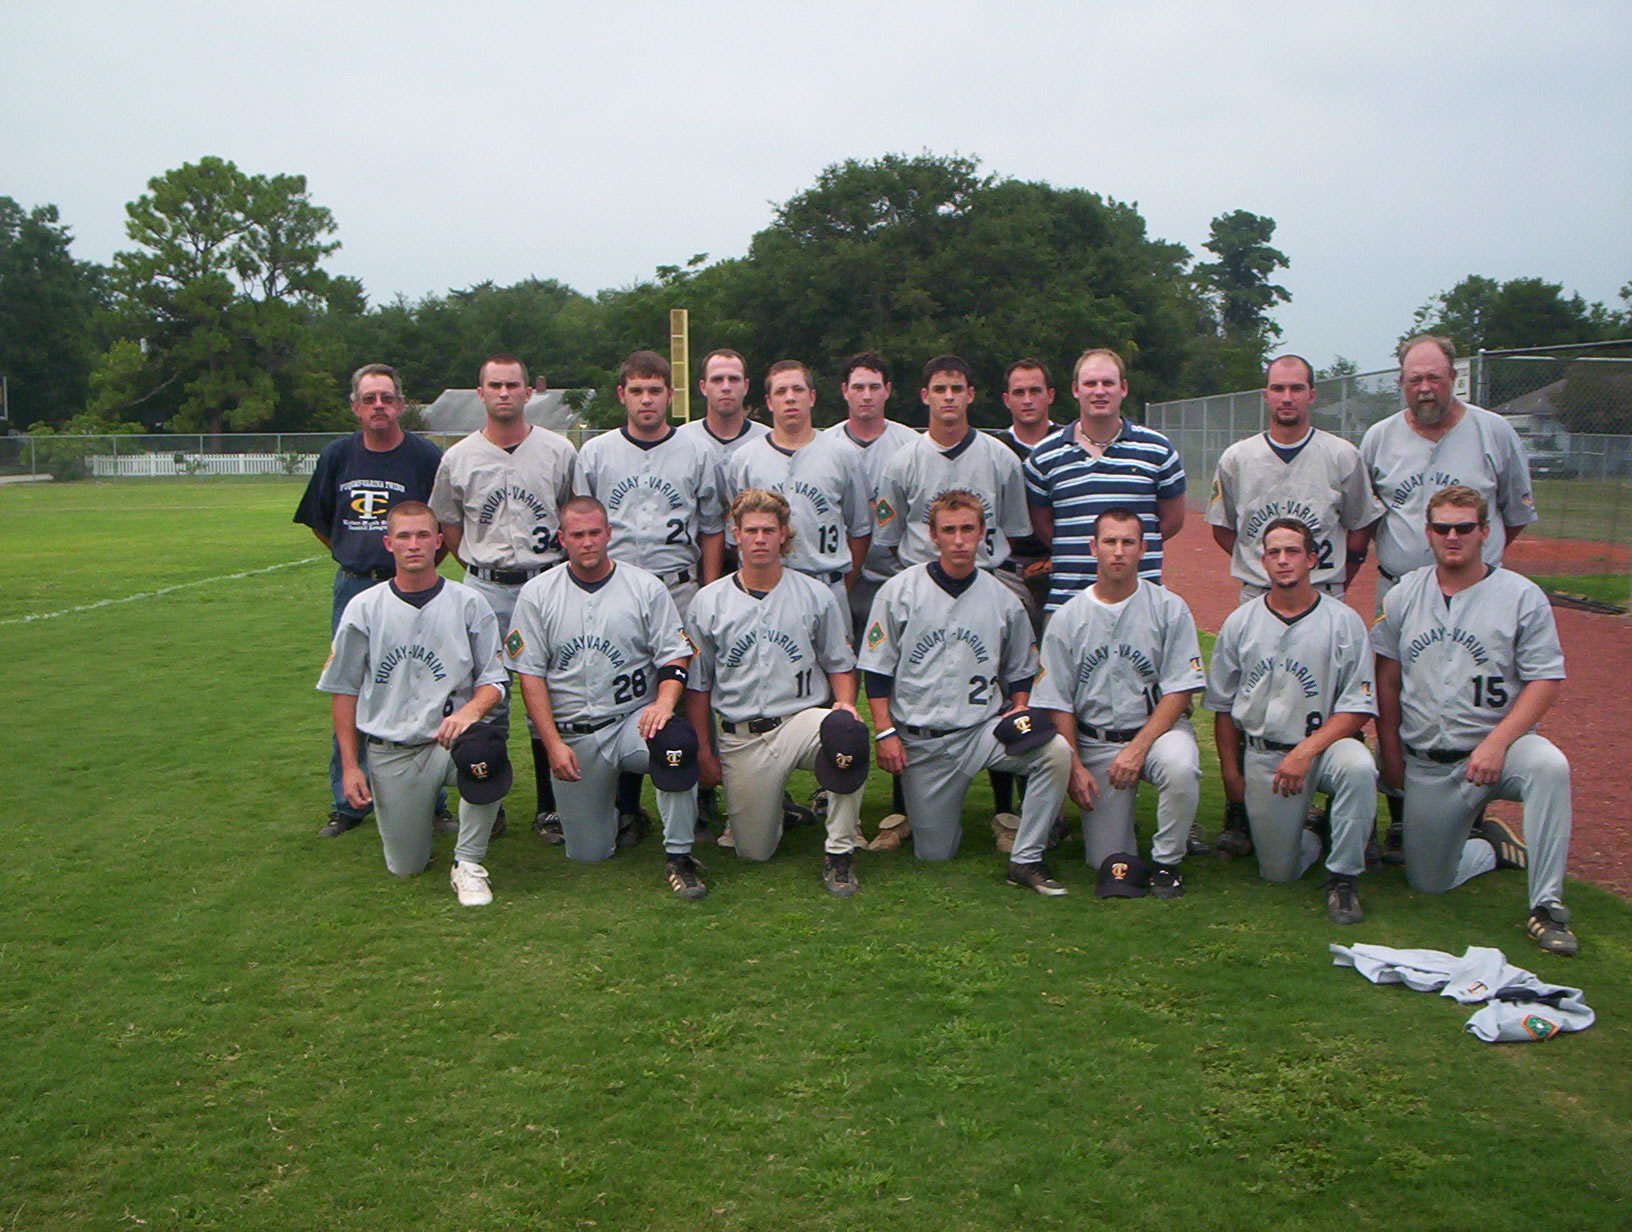 2006 Team Photos